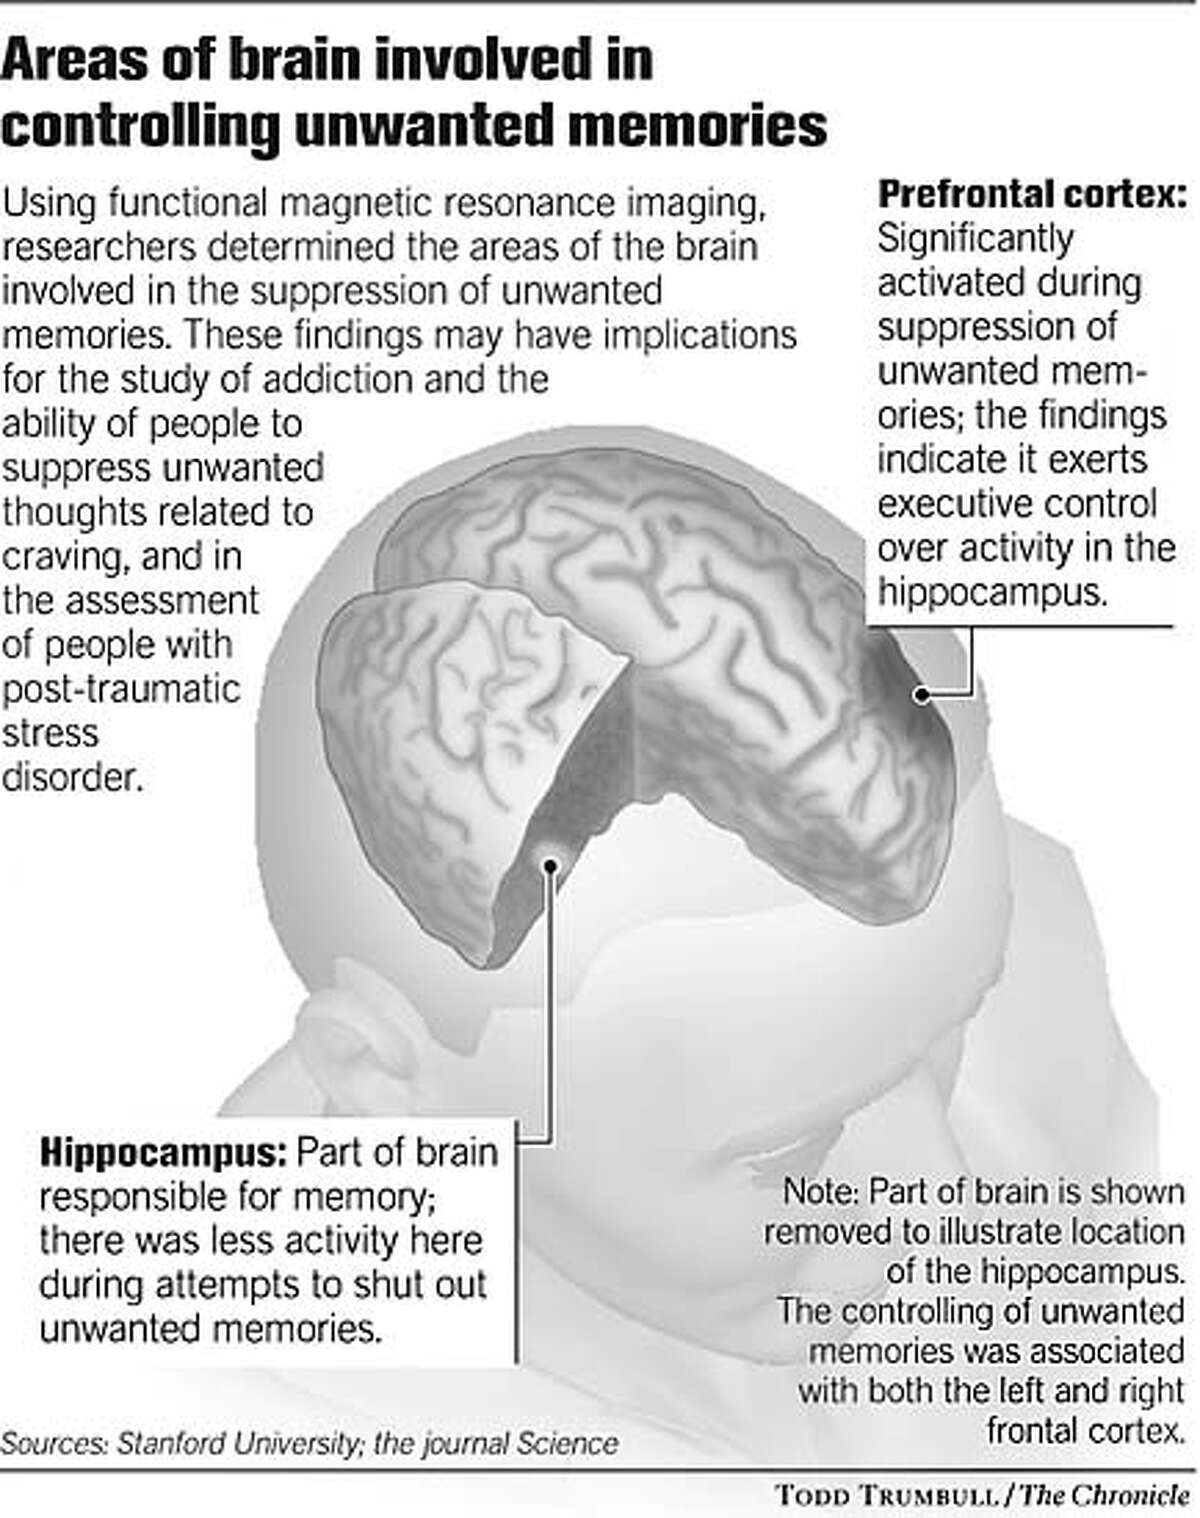 Areas of brain involved in controlling unwanted memories. Chronicle graphic by Todd Trumbull